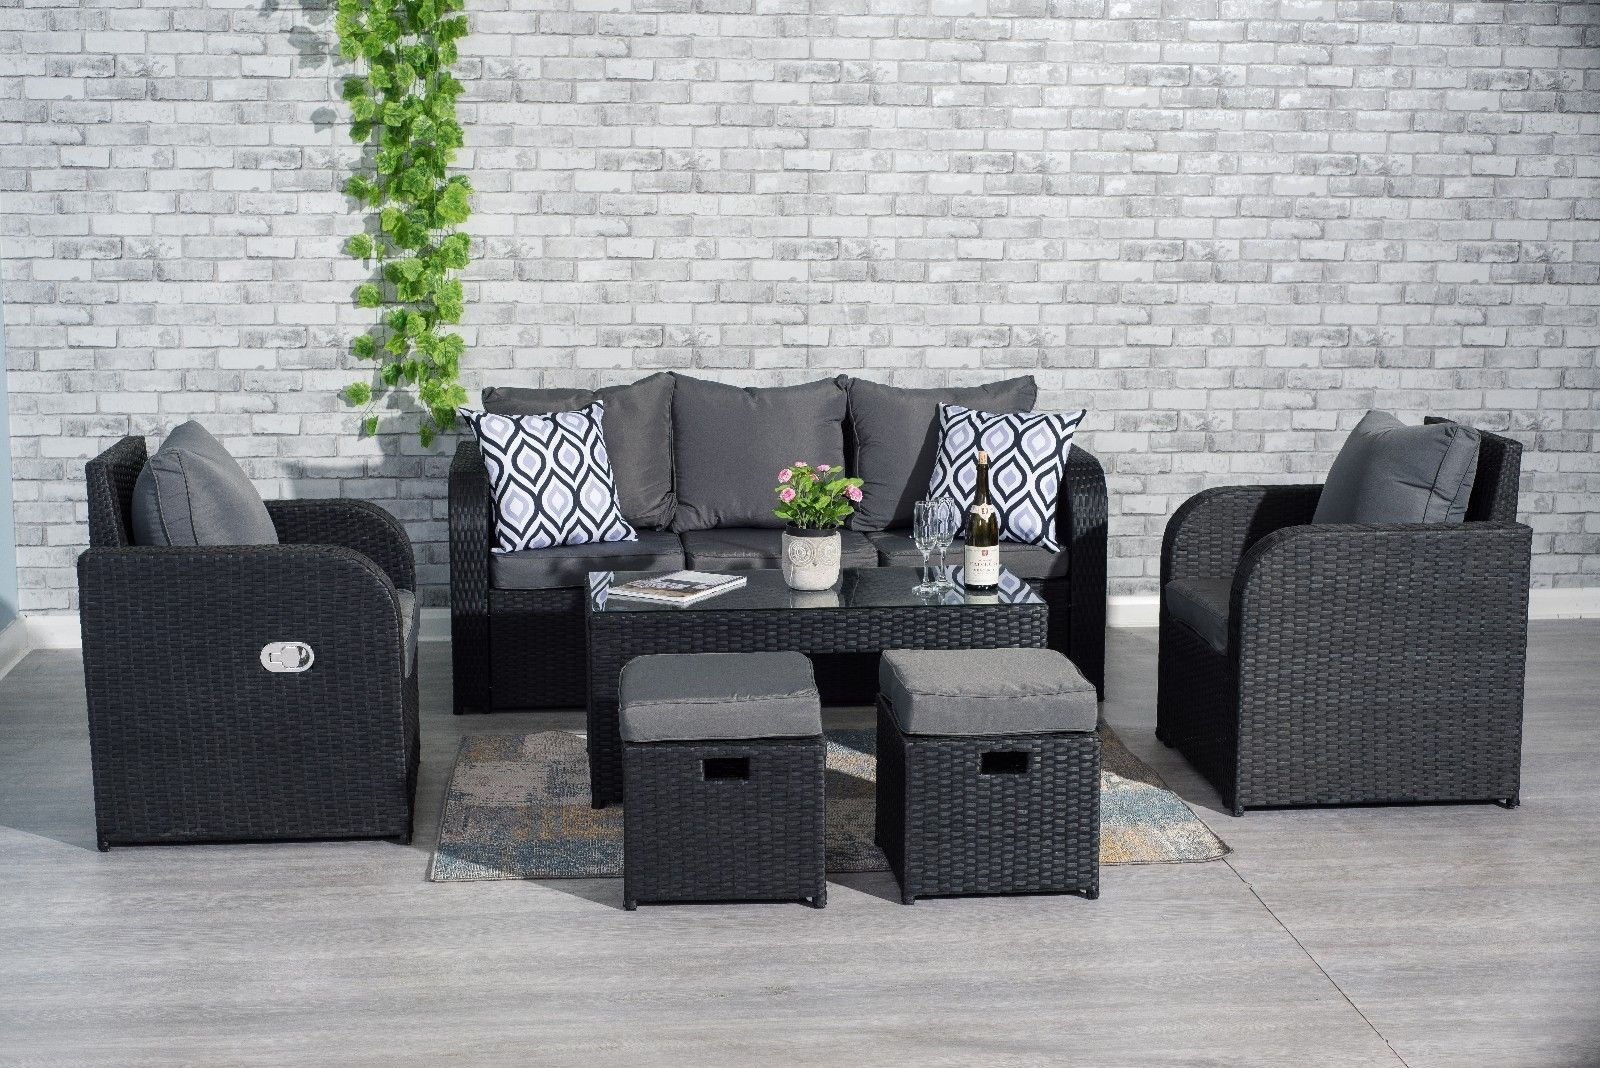 Yakoe Outdoor Rattan Garden Furniture 5 Seater Corner Sofa Patio Set Black For Sale Online Ebay Rattan Garden Furniture 5 Seater Corner Sofa Rattan Garden Furniture Sets